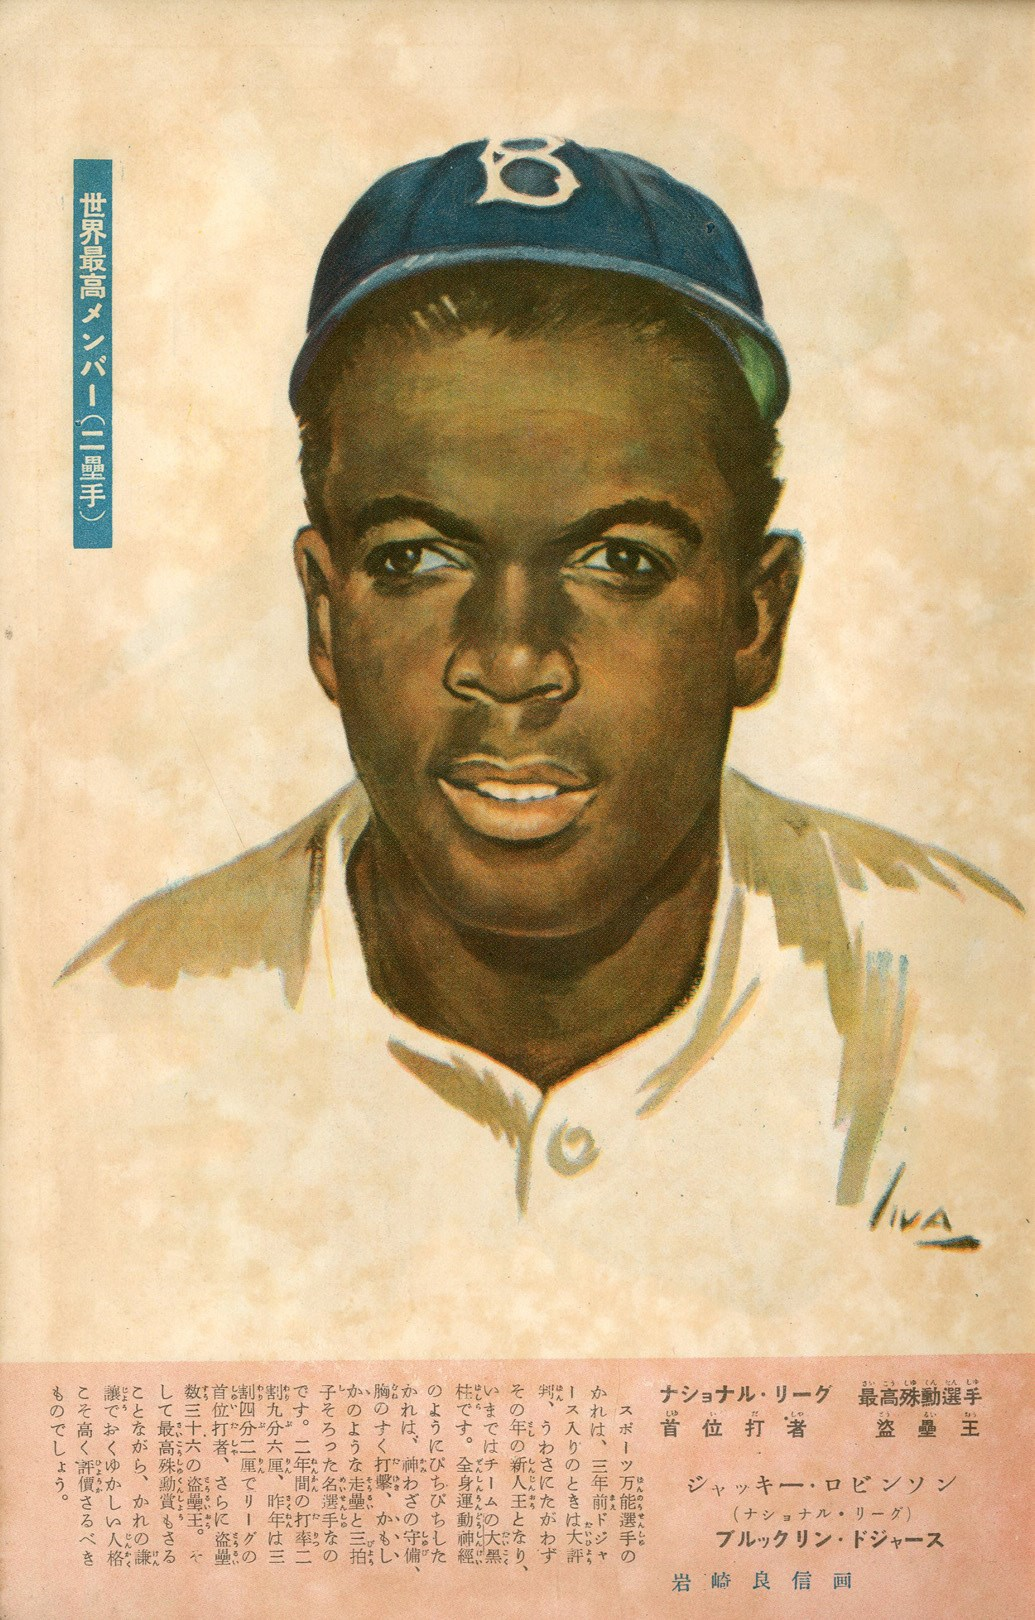 Negro League, Latin, Japanese & International Base - Leland's Classic